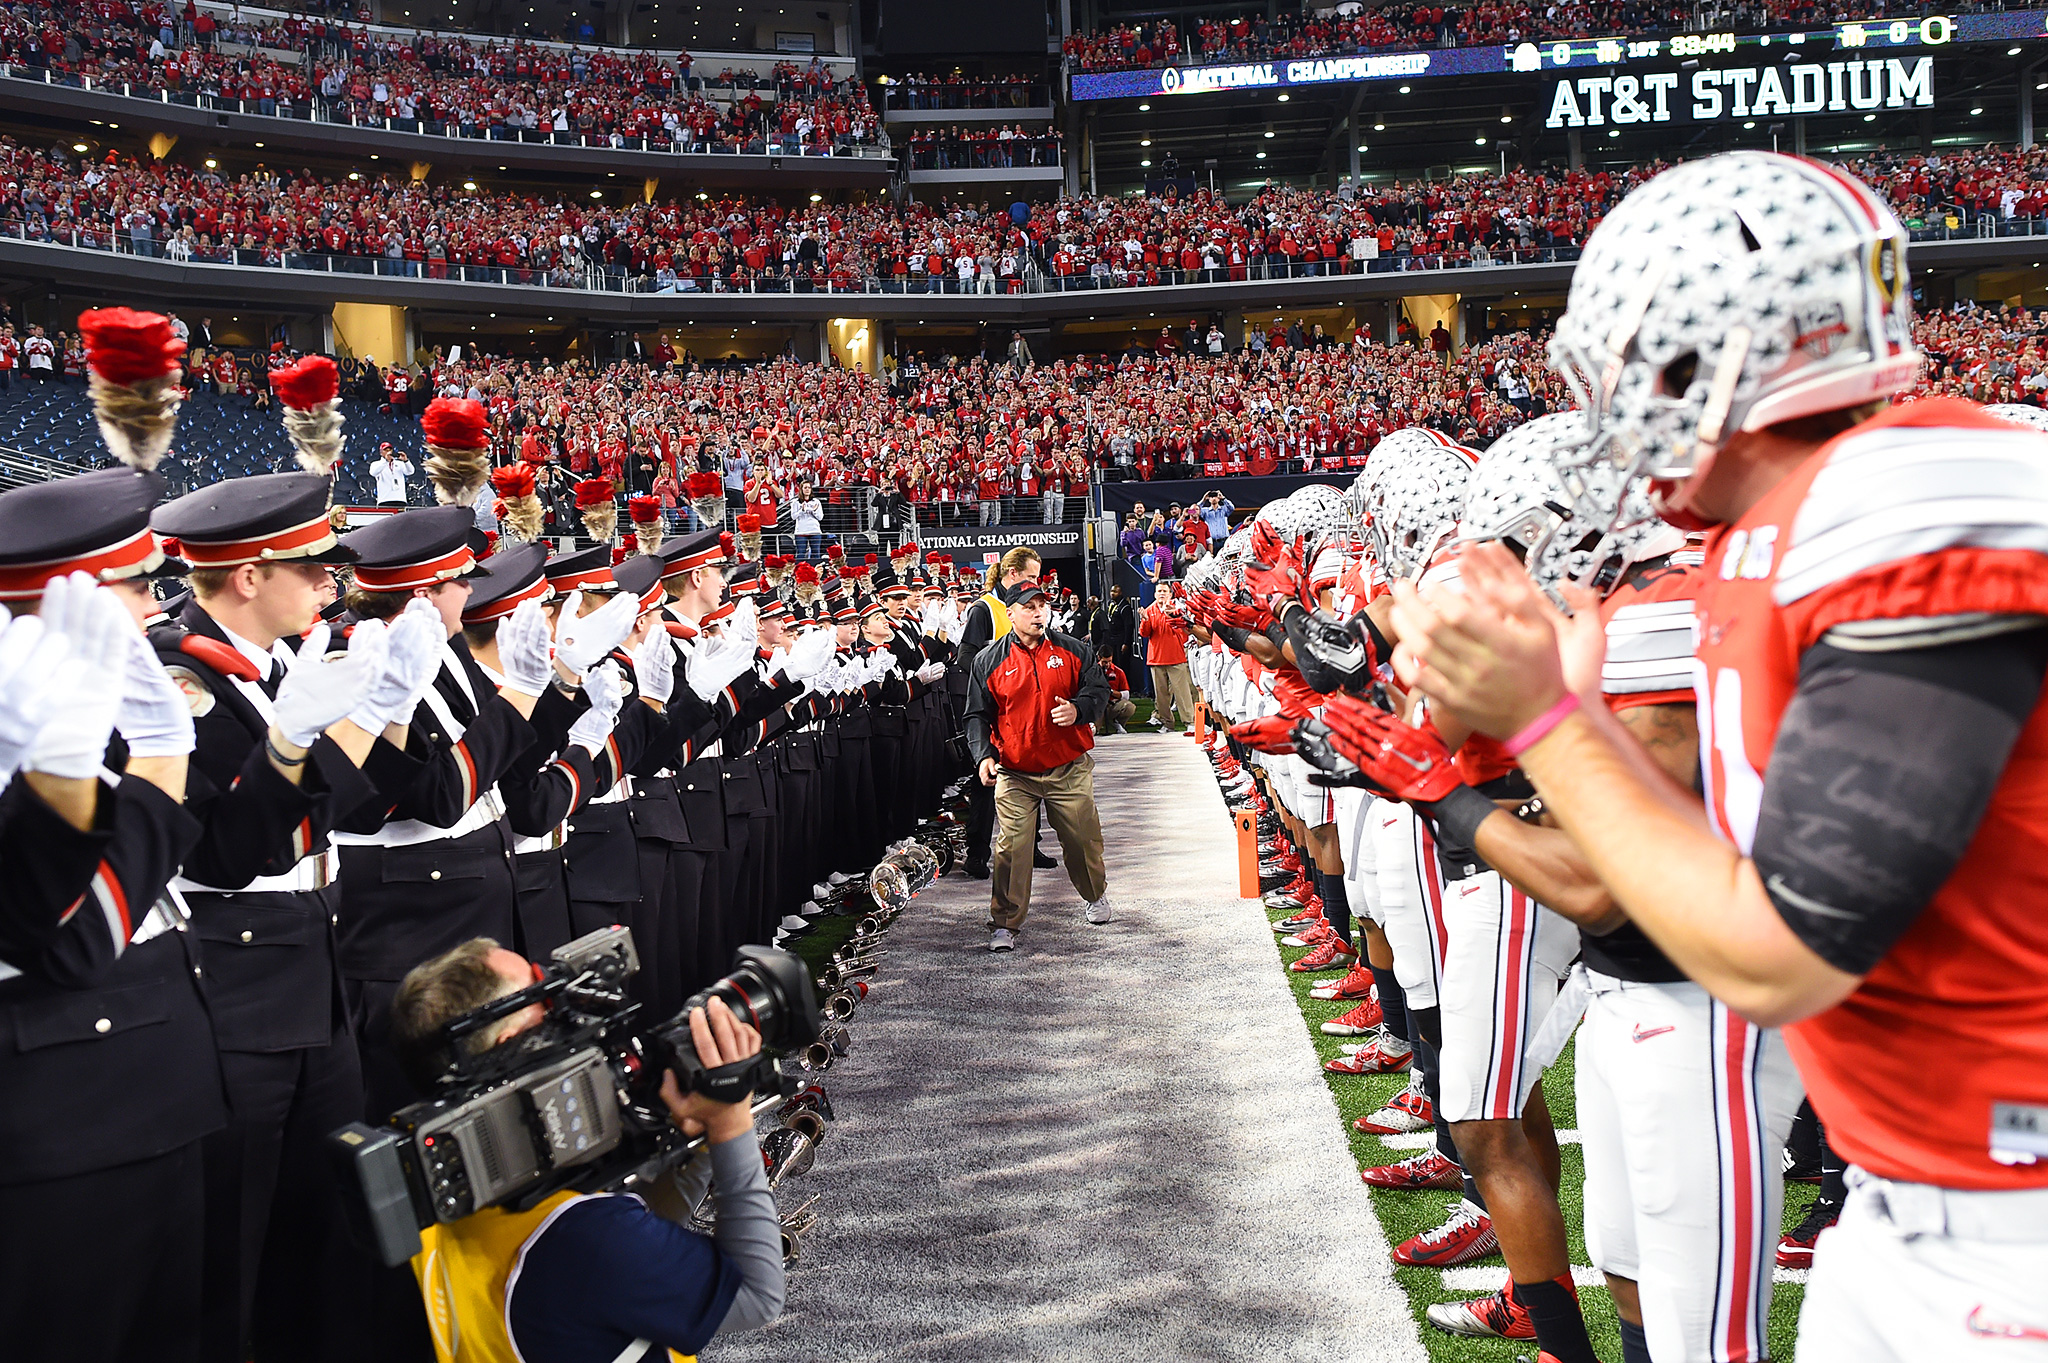 college national championship football espn.com college football schedule